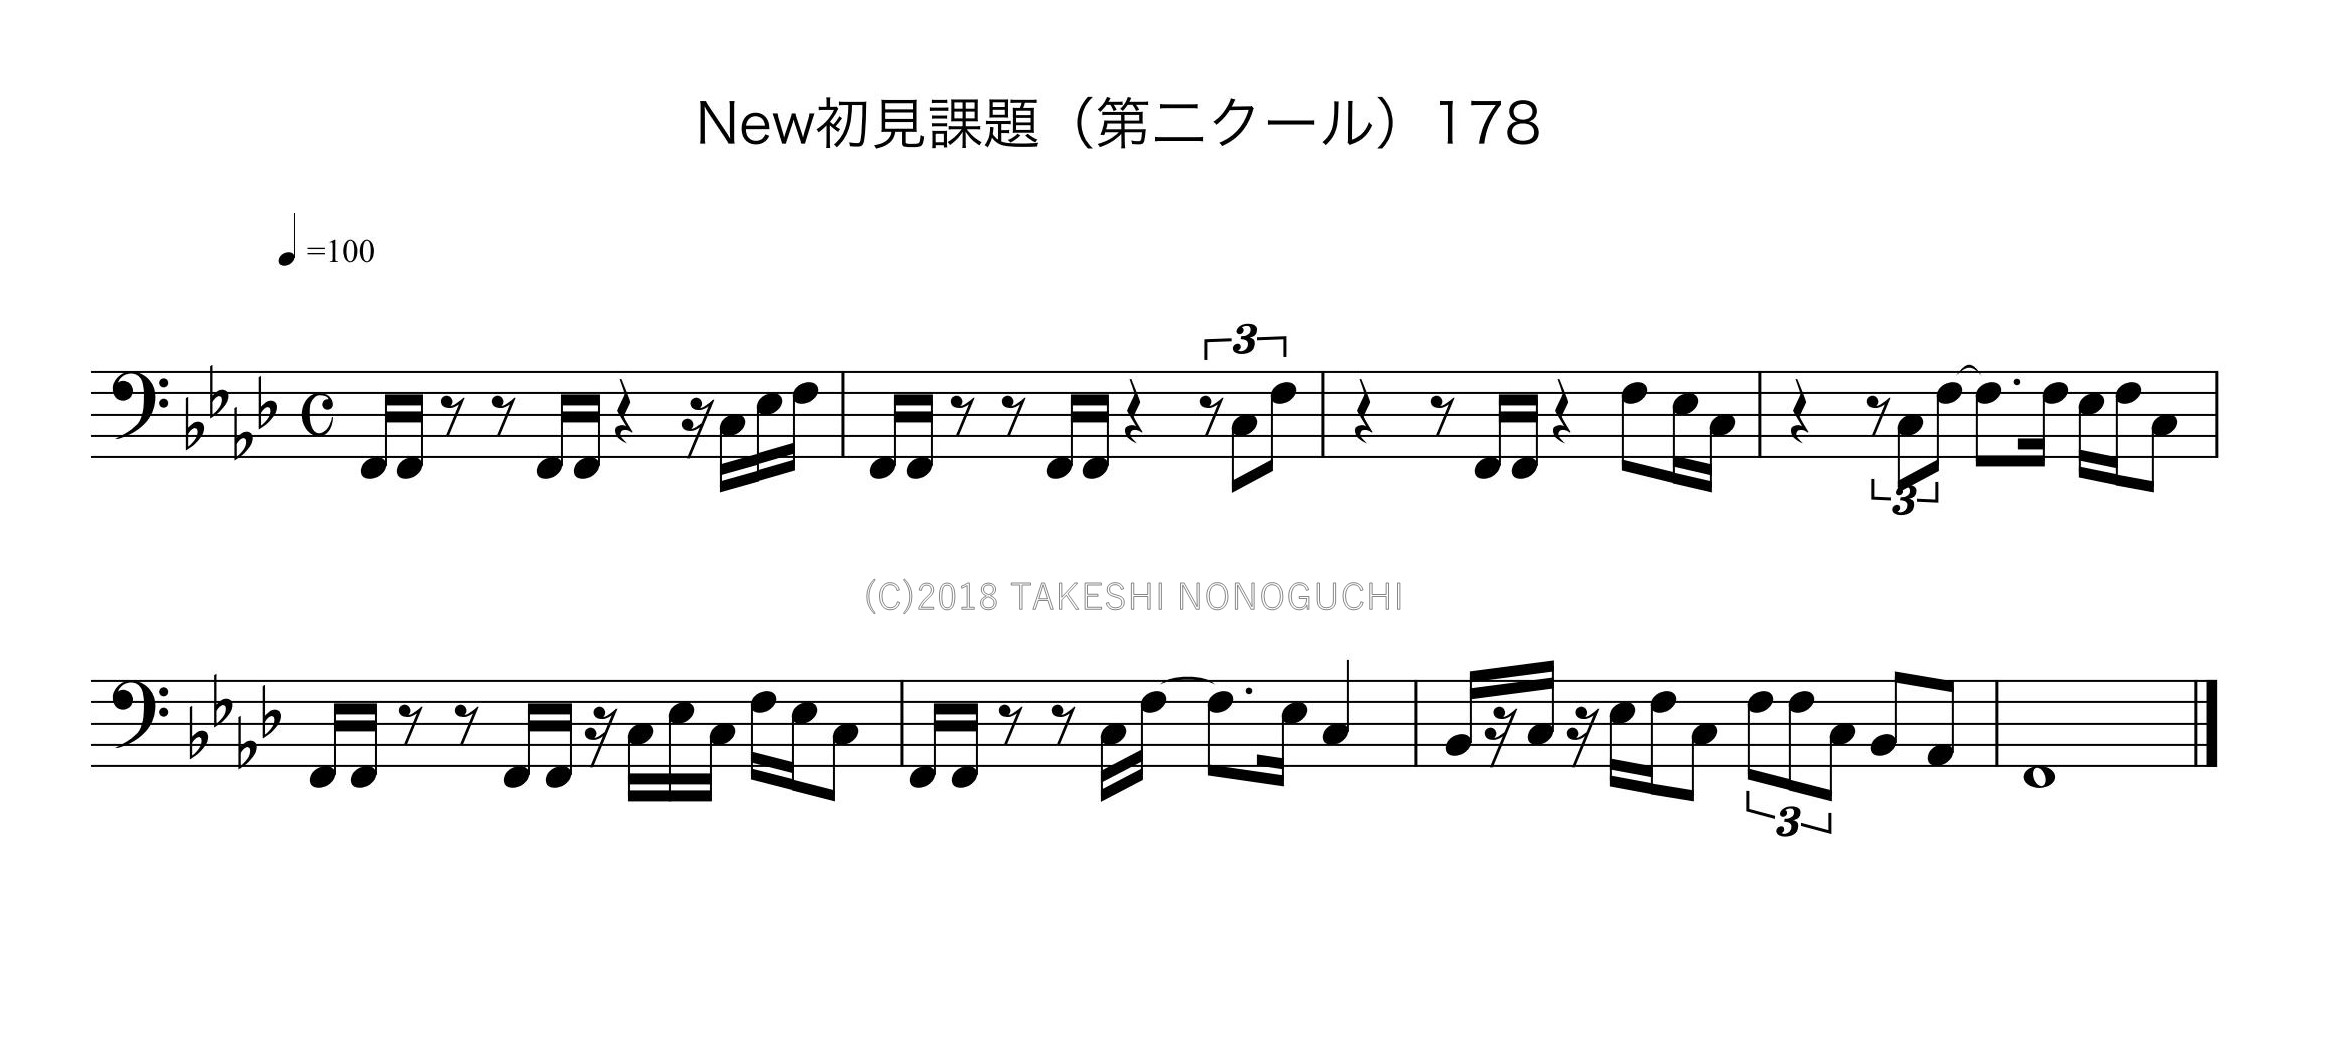 NEW初見課題(第二クール)NO.178